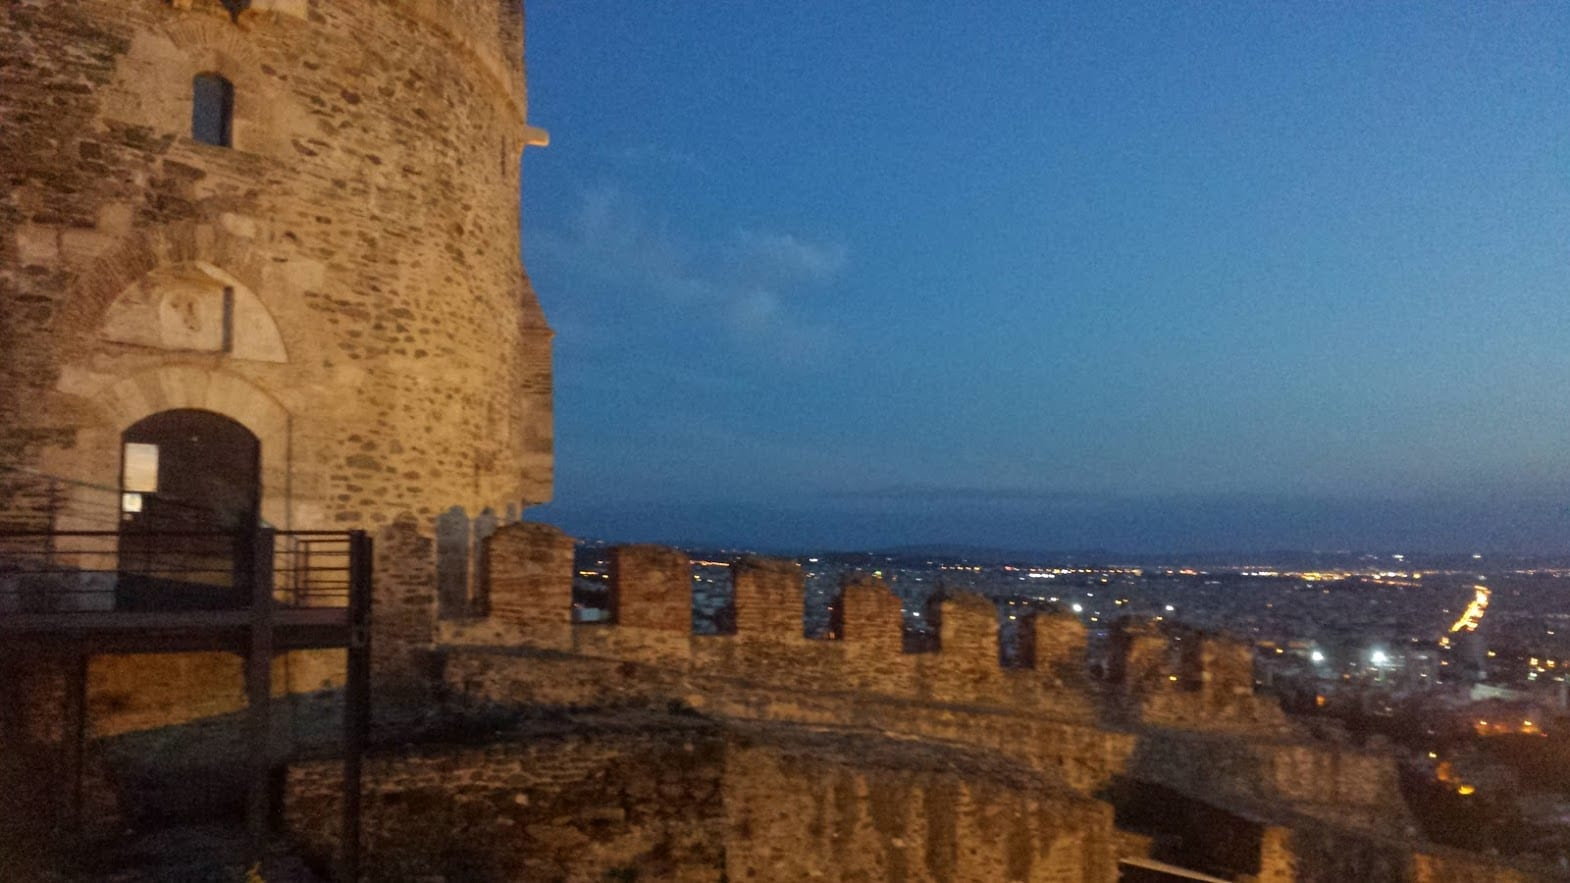 A view from the fortifications in Thessaloniki